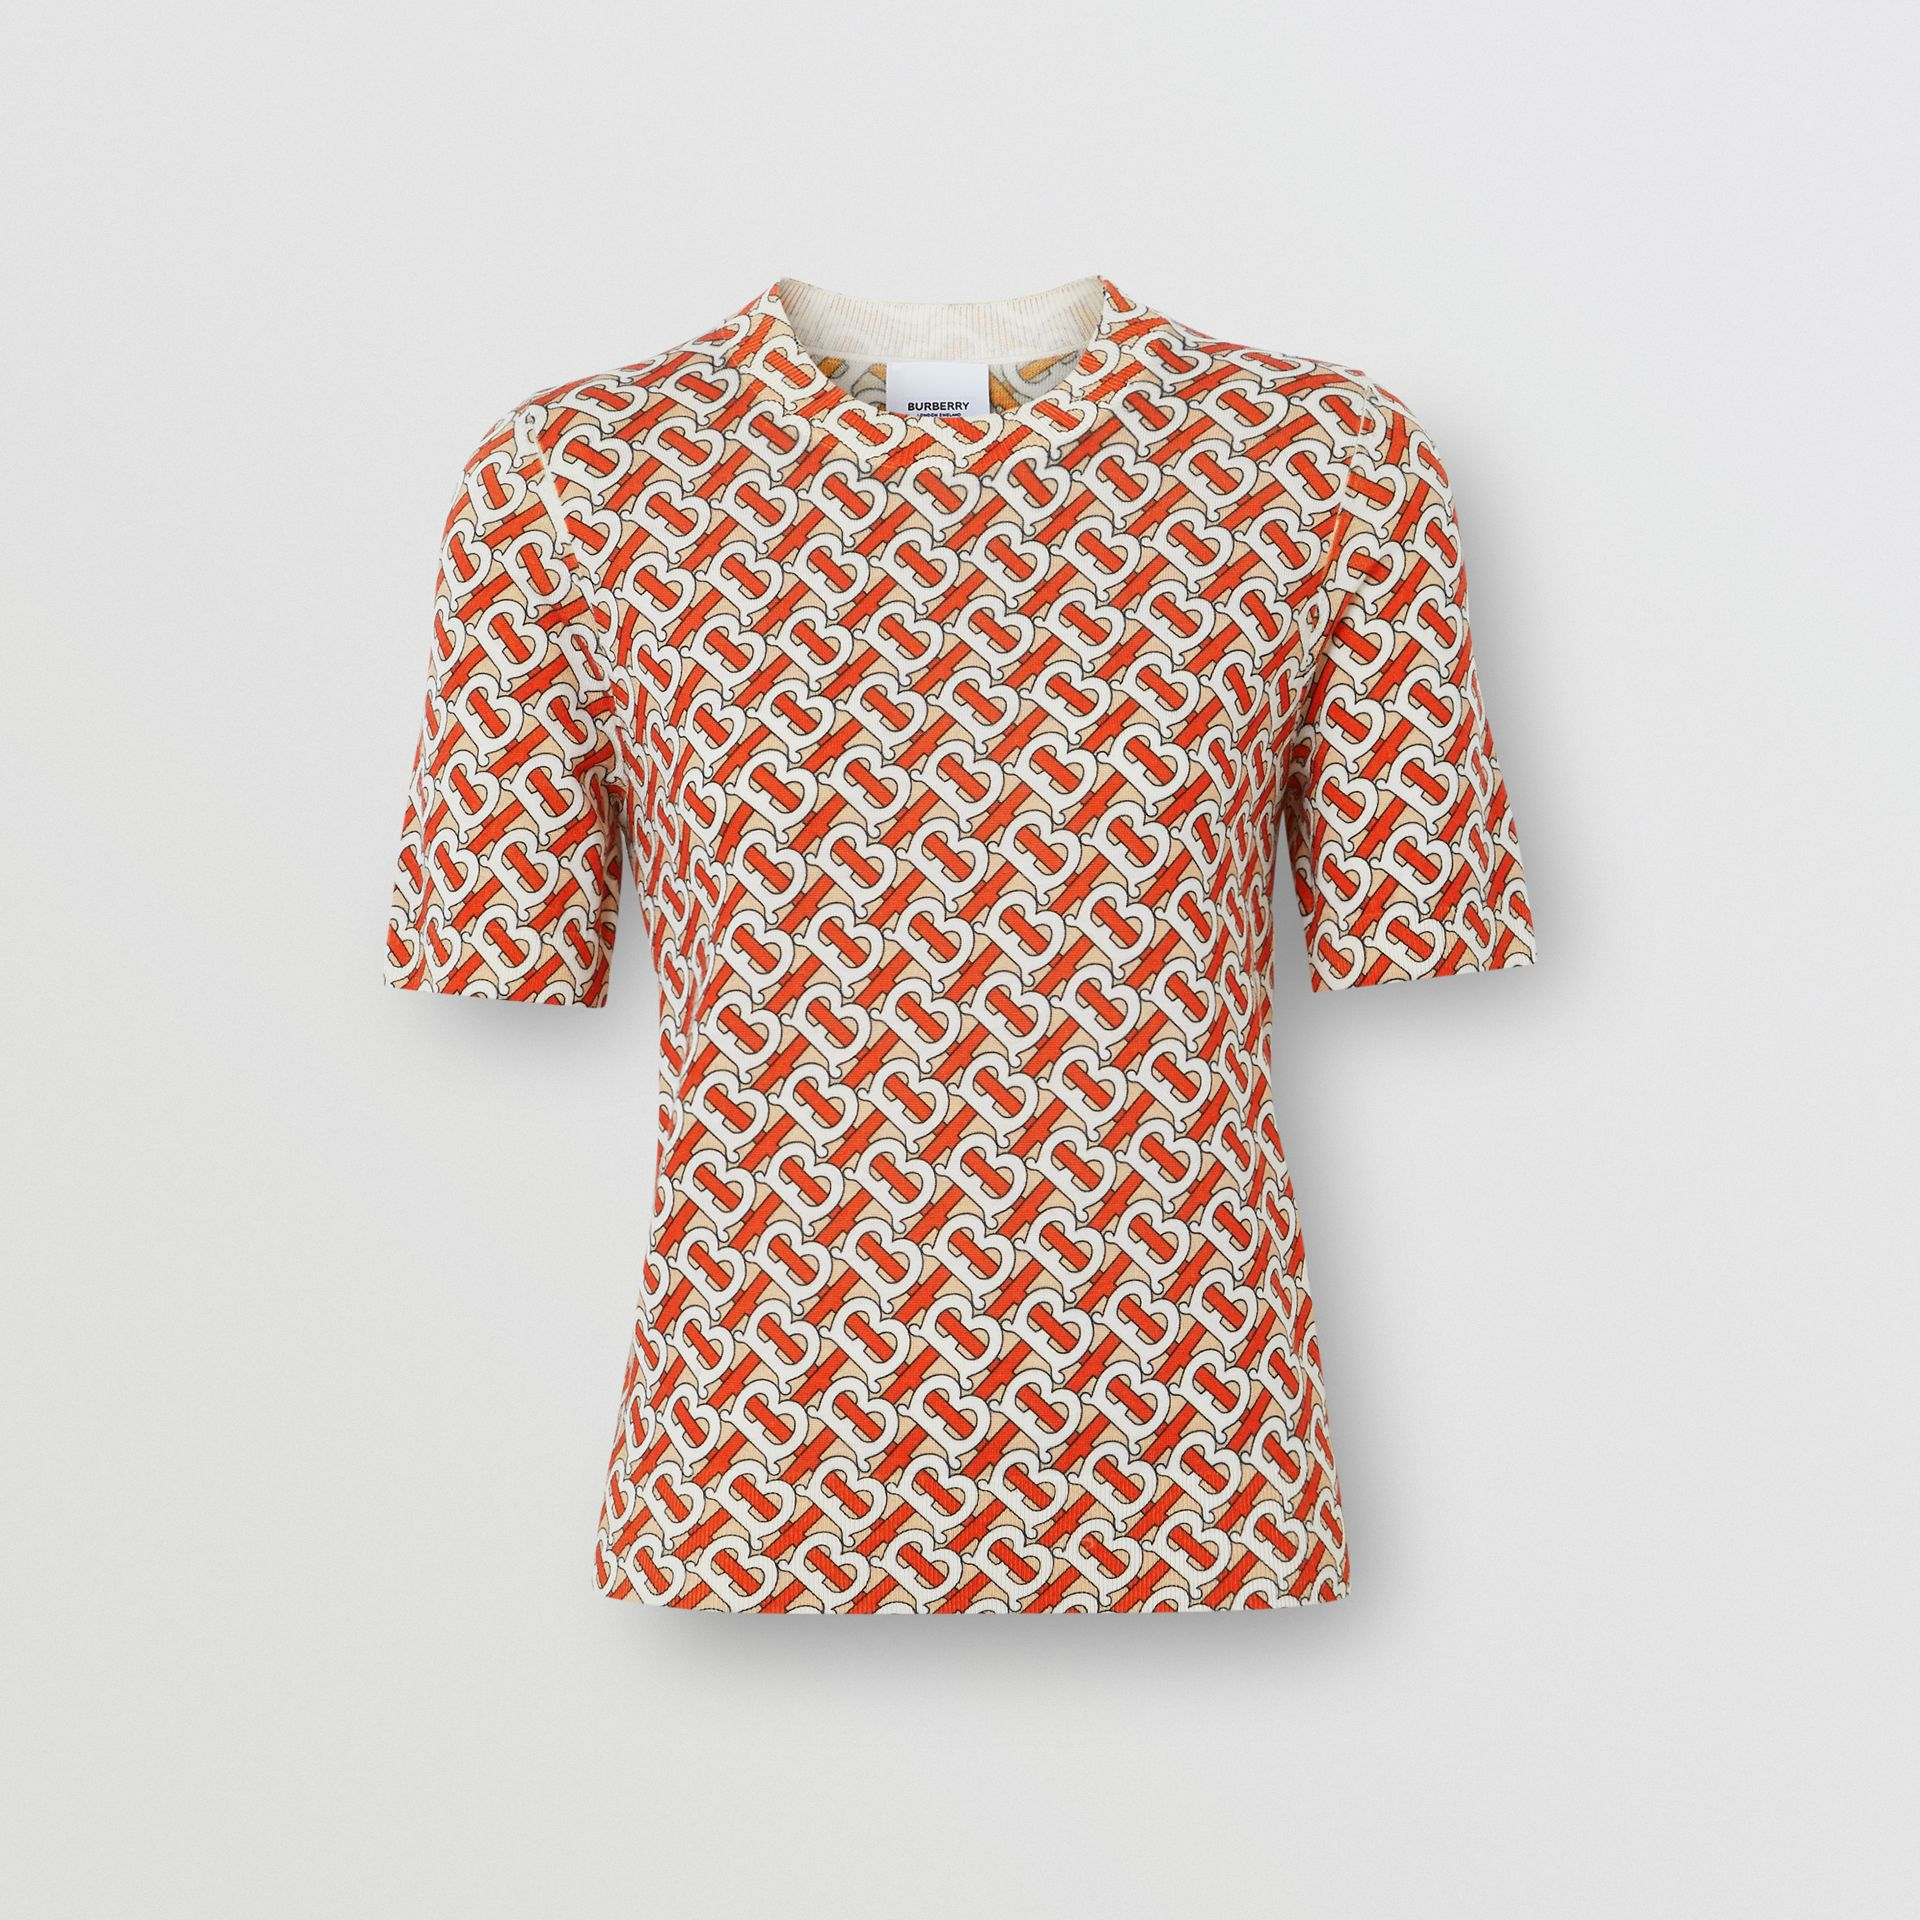 Monogram Print Merino Wool Top in Vermillion - Women | Burberry United Kingdom - gallery image 3